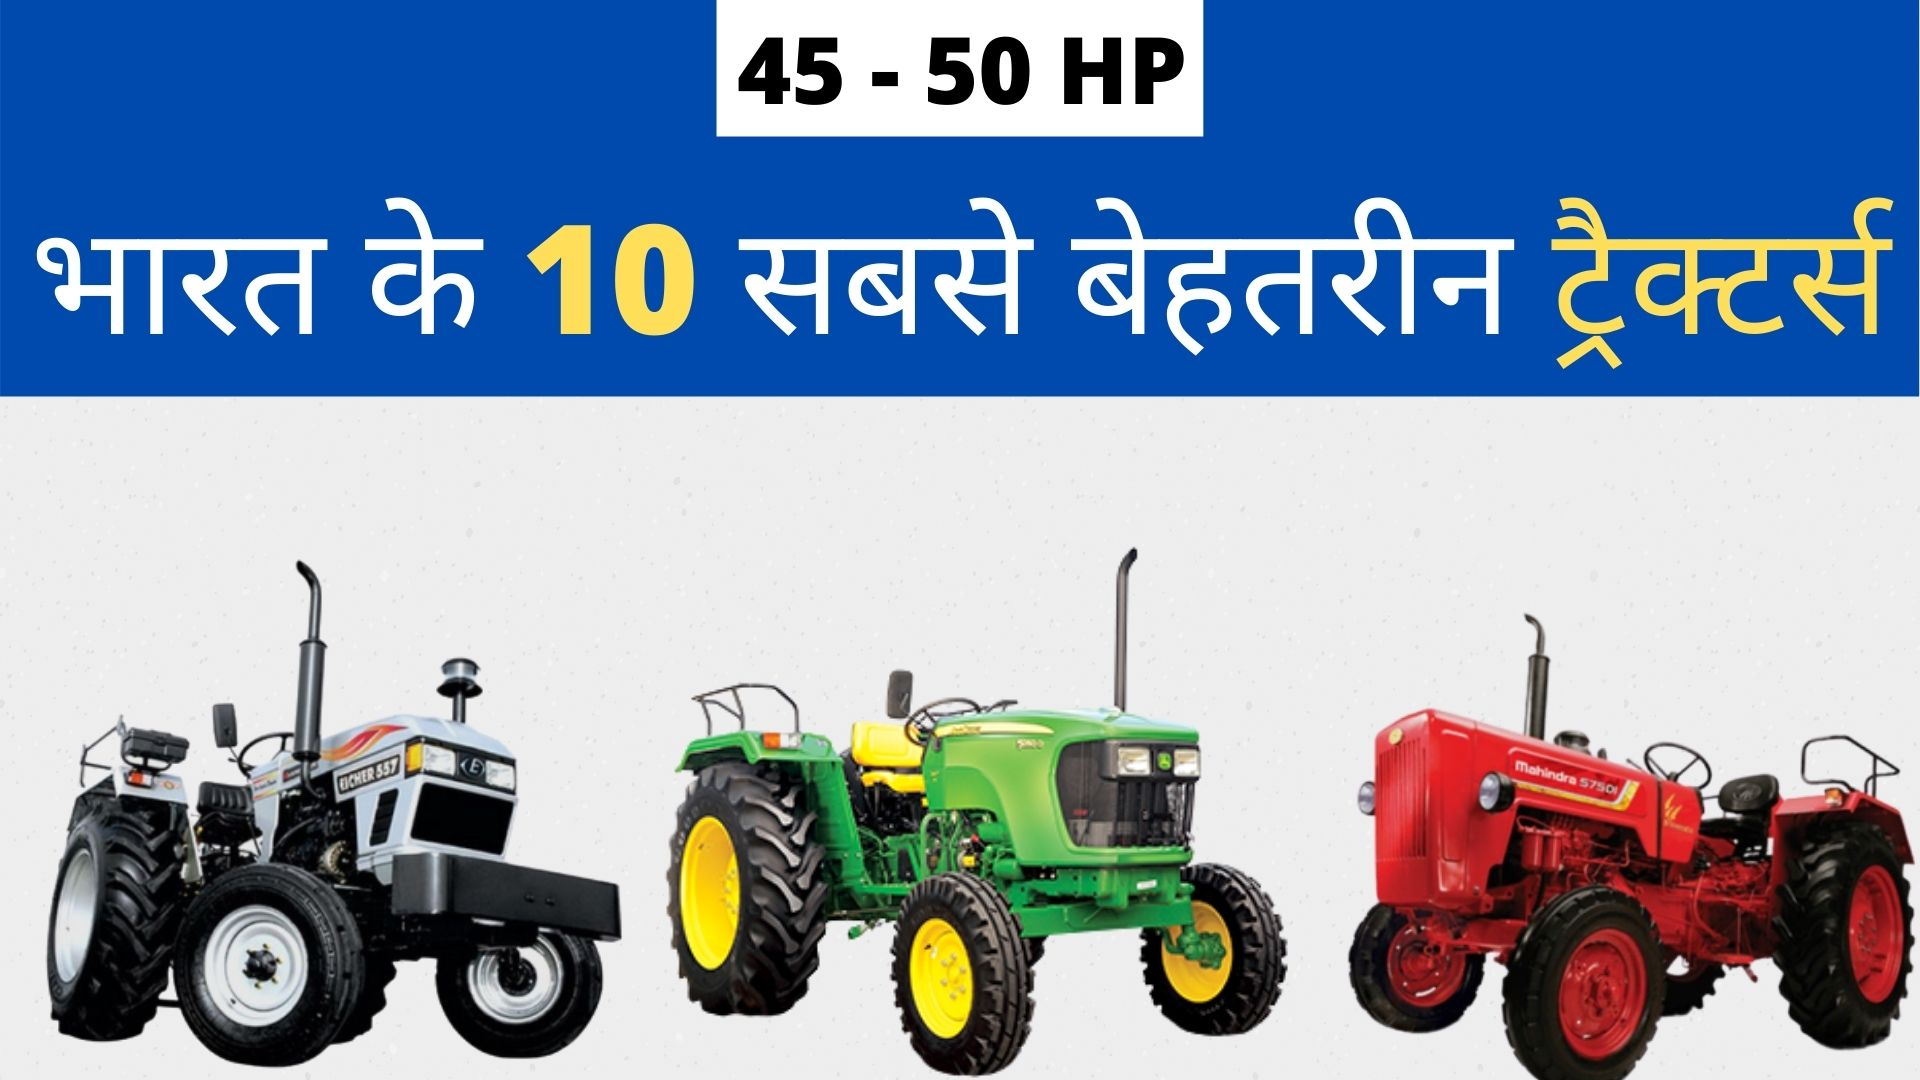 Latest Top 10 Tractors in India (45-50 HP)